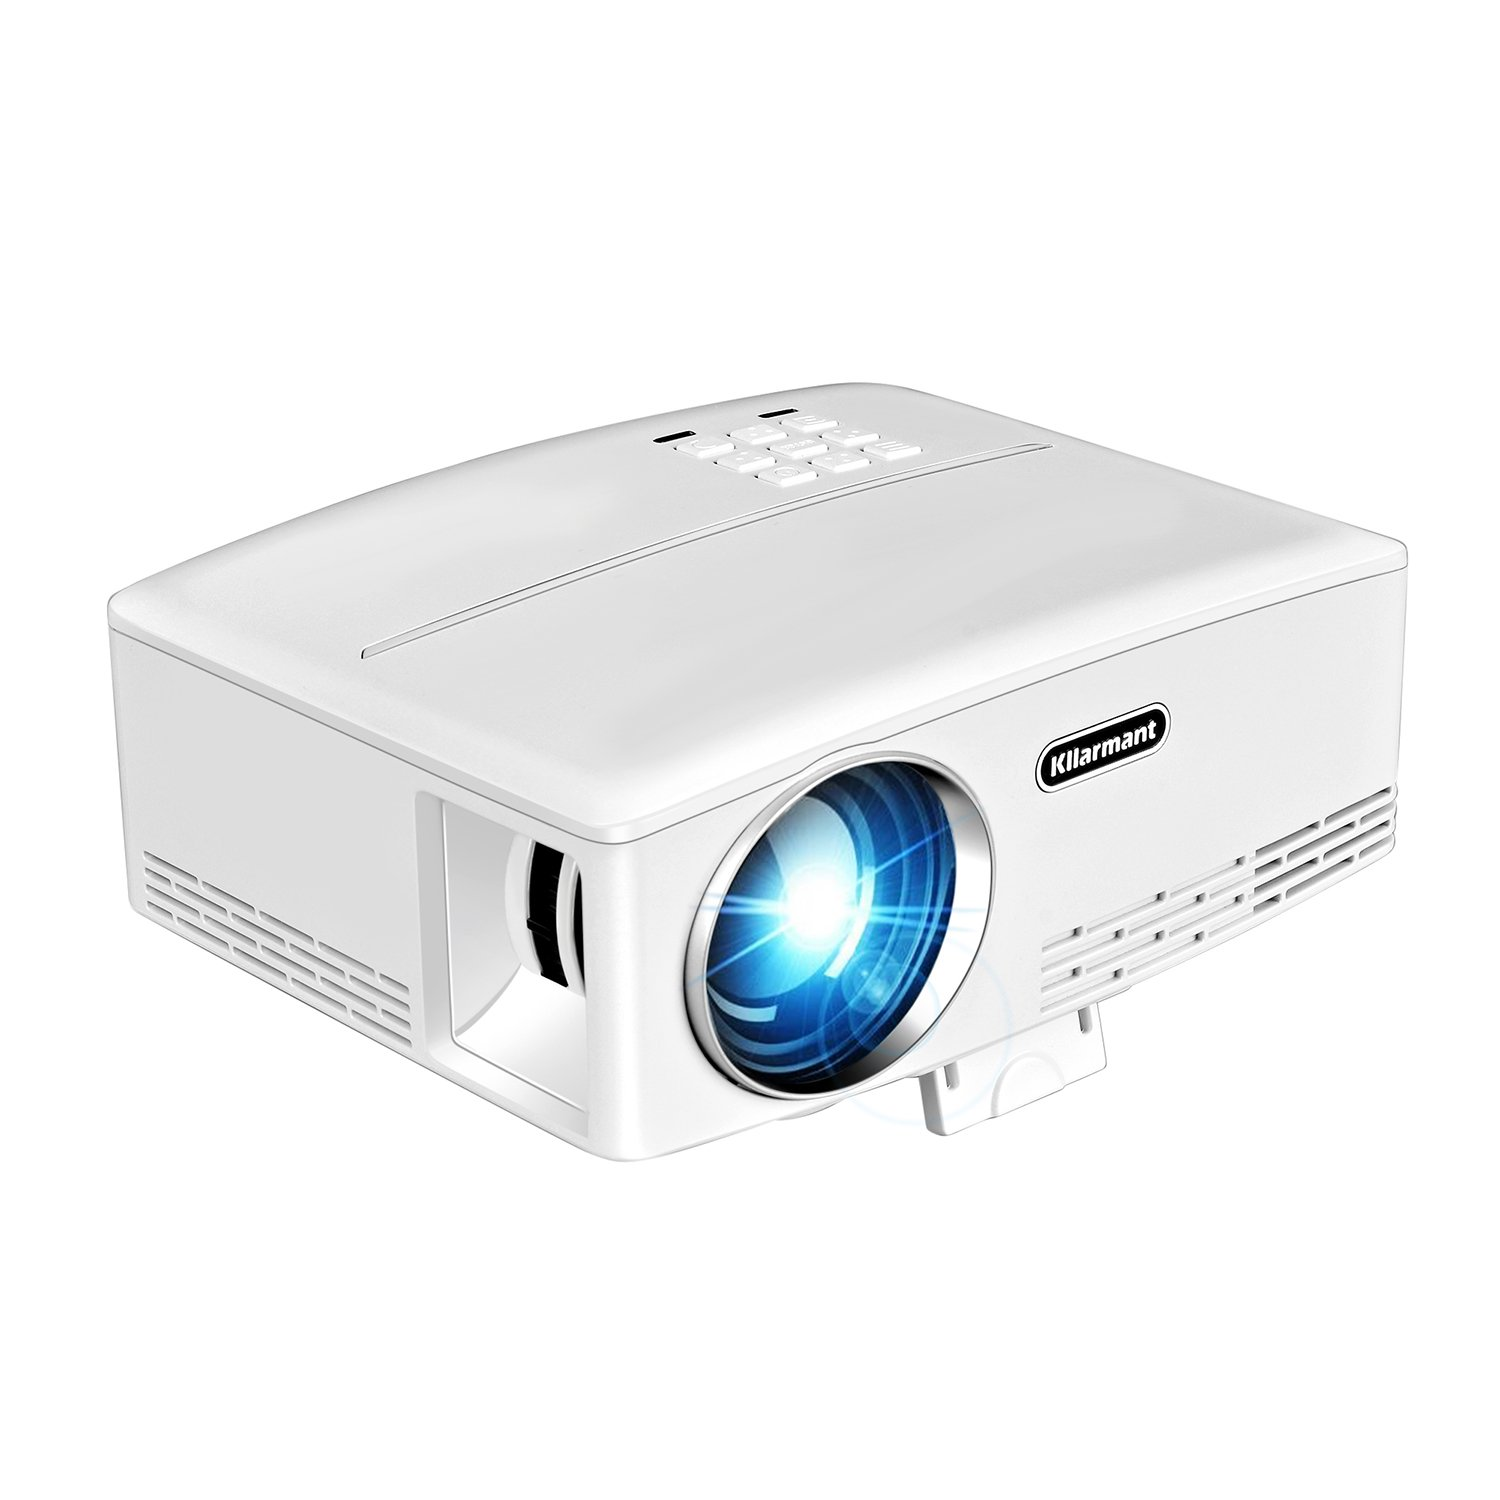 Projector, Kllarmant Full HD 1080P Built-In Speakers Mini Home Projector, VGA USB HDMI Support Smart Phone, Tablets, Laptops and HD Games.